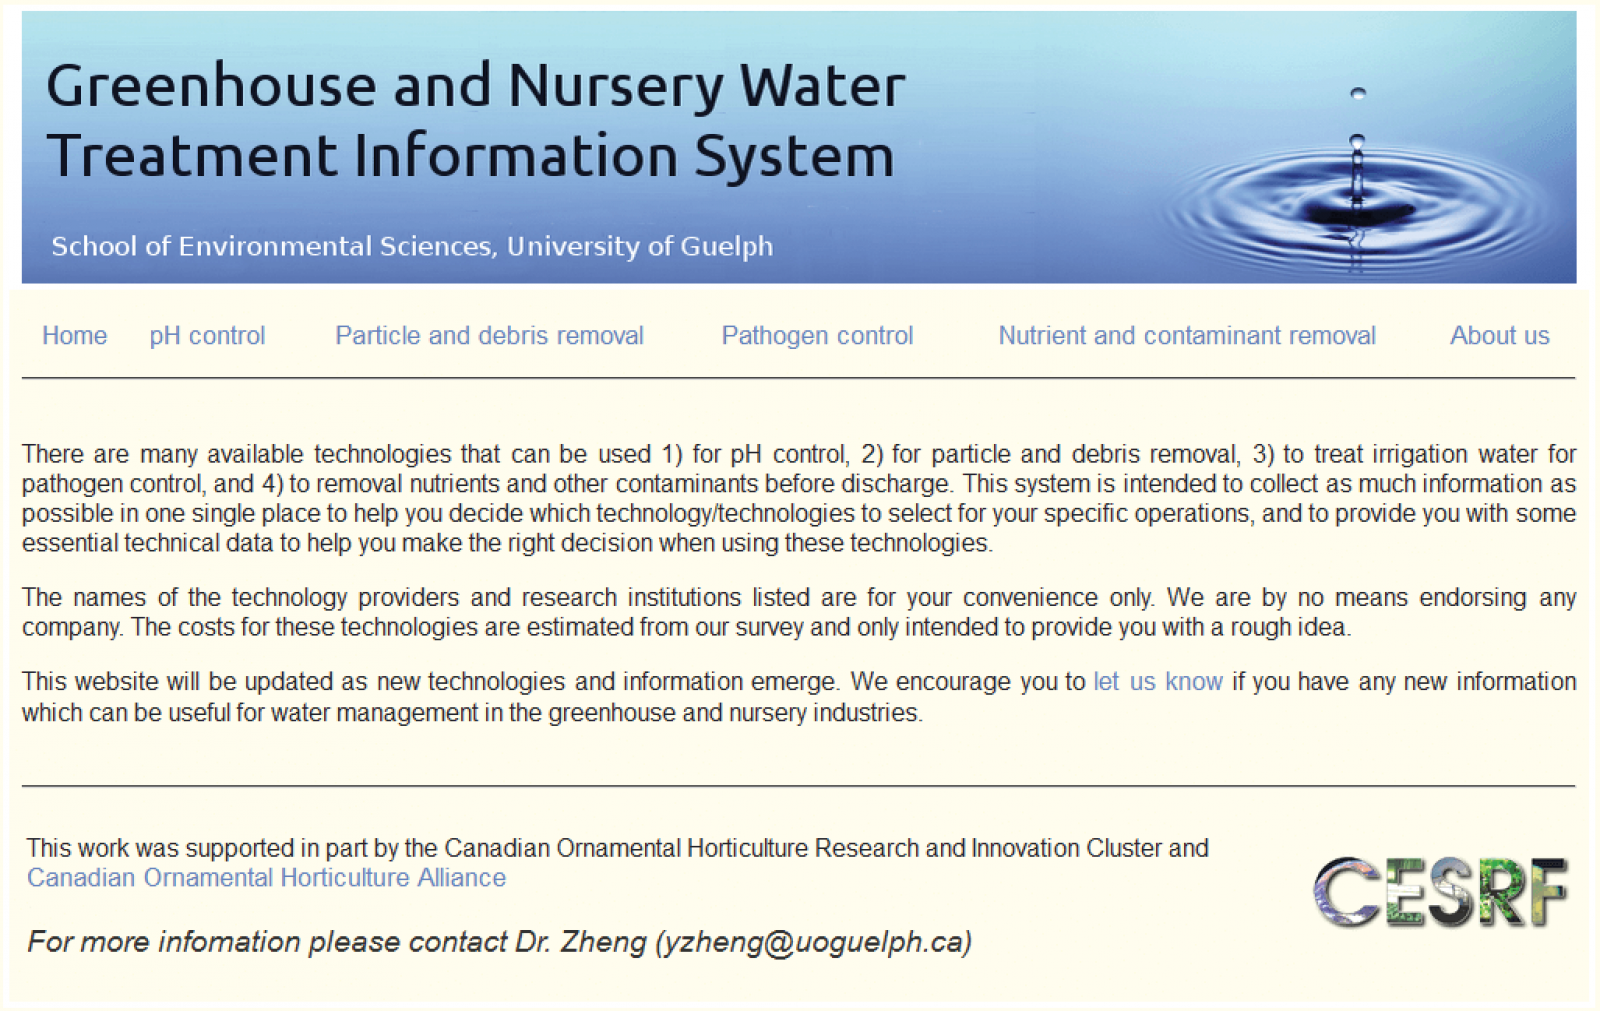 New online tool can help greenhouse and nursery sector with water treatment information.